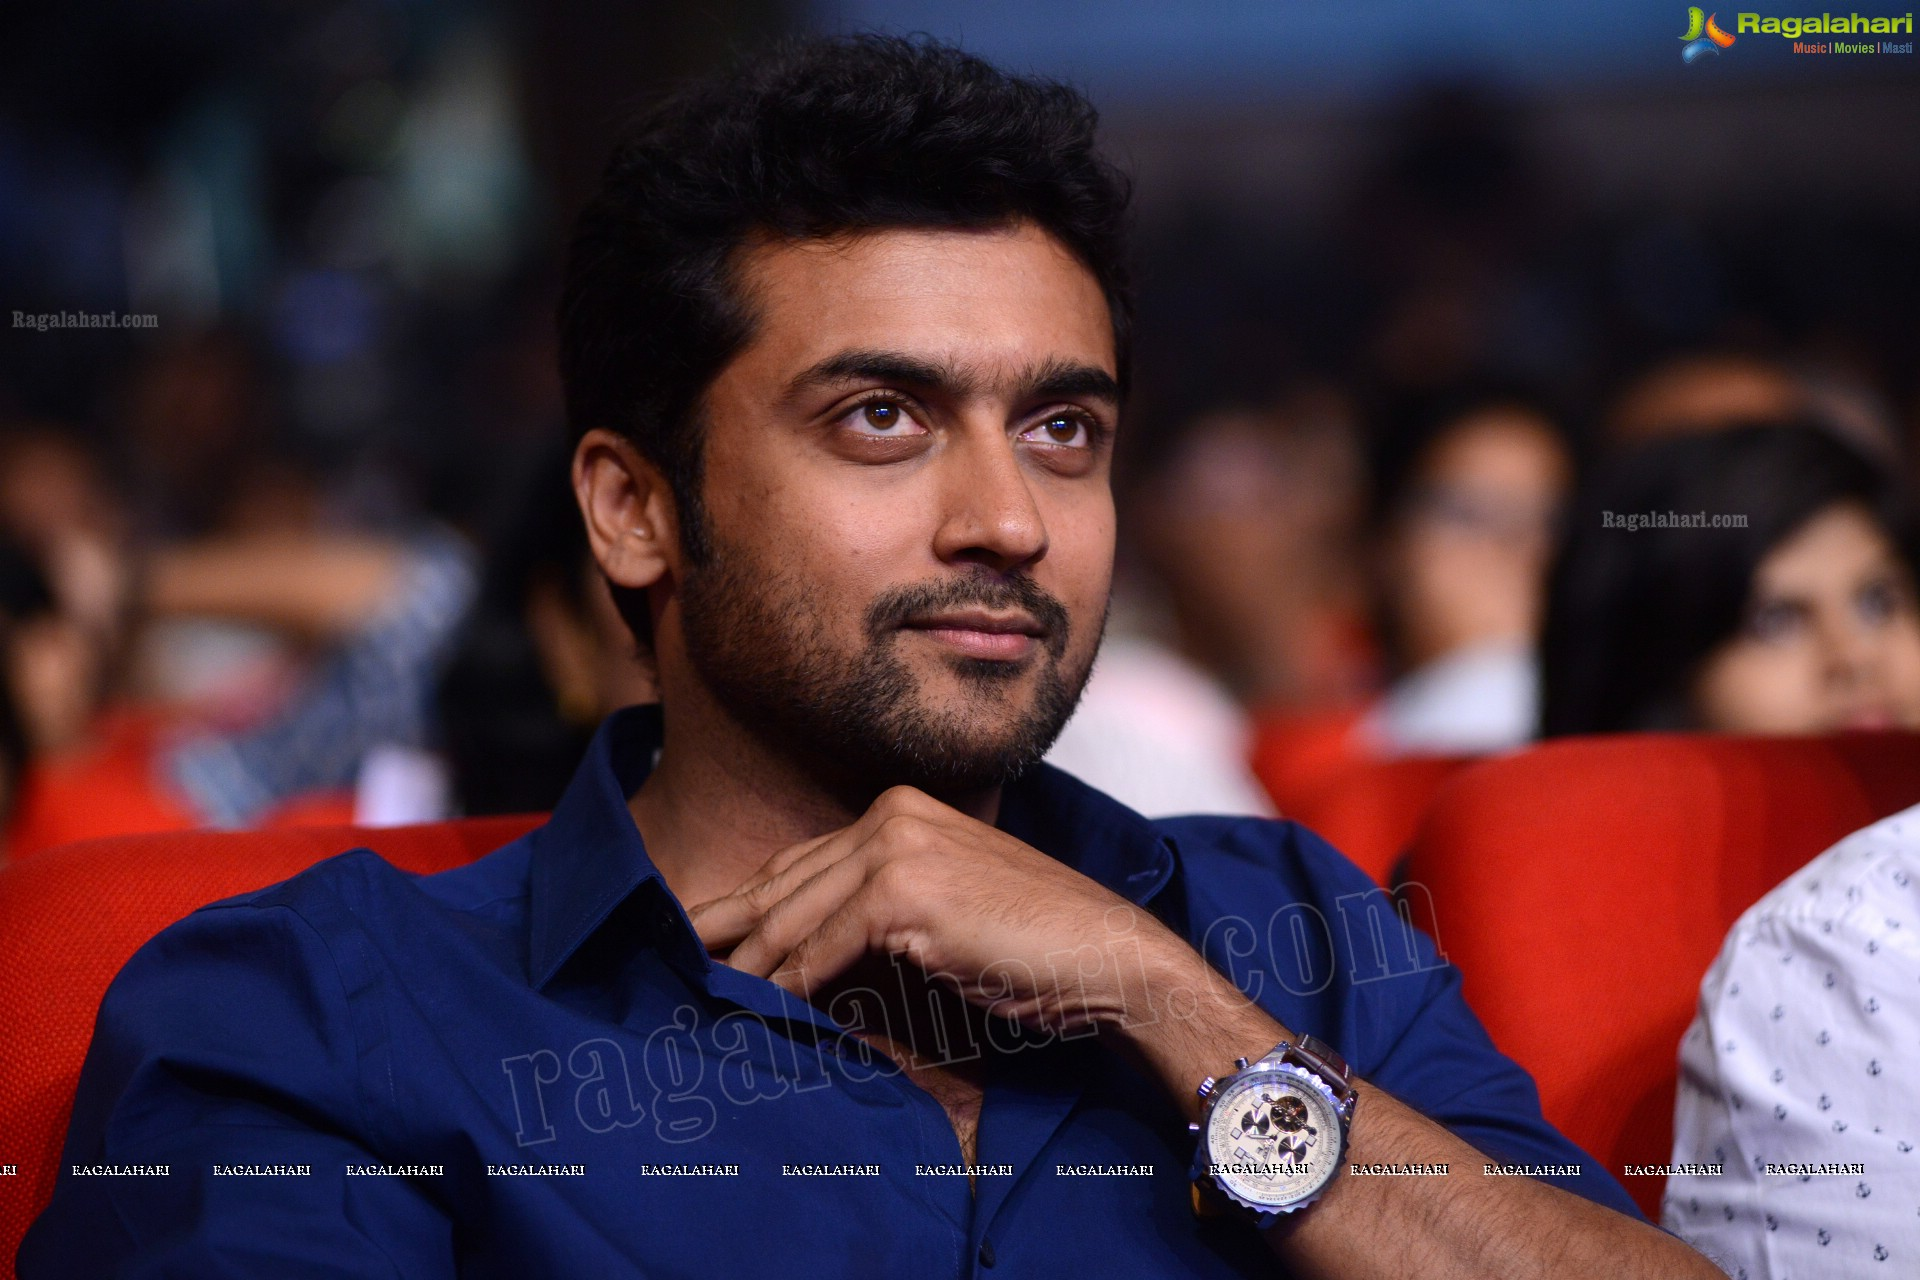 Hero Surya Family donated for HudHud relief fund